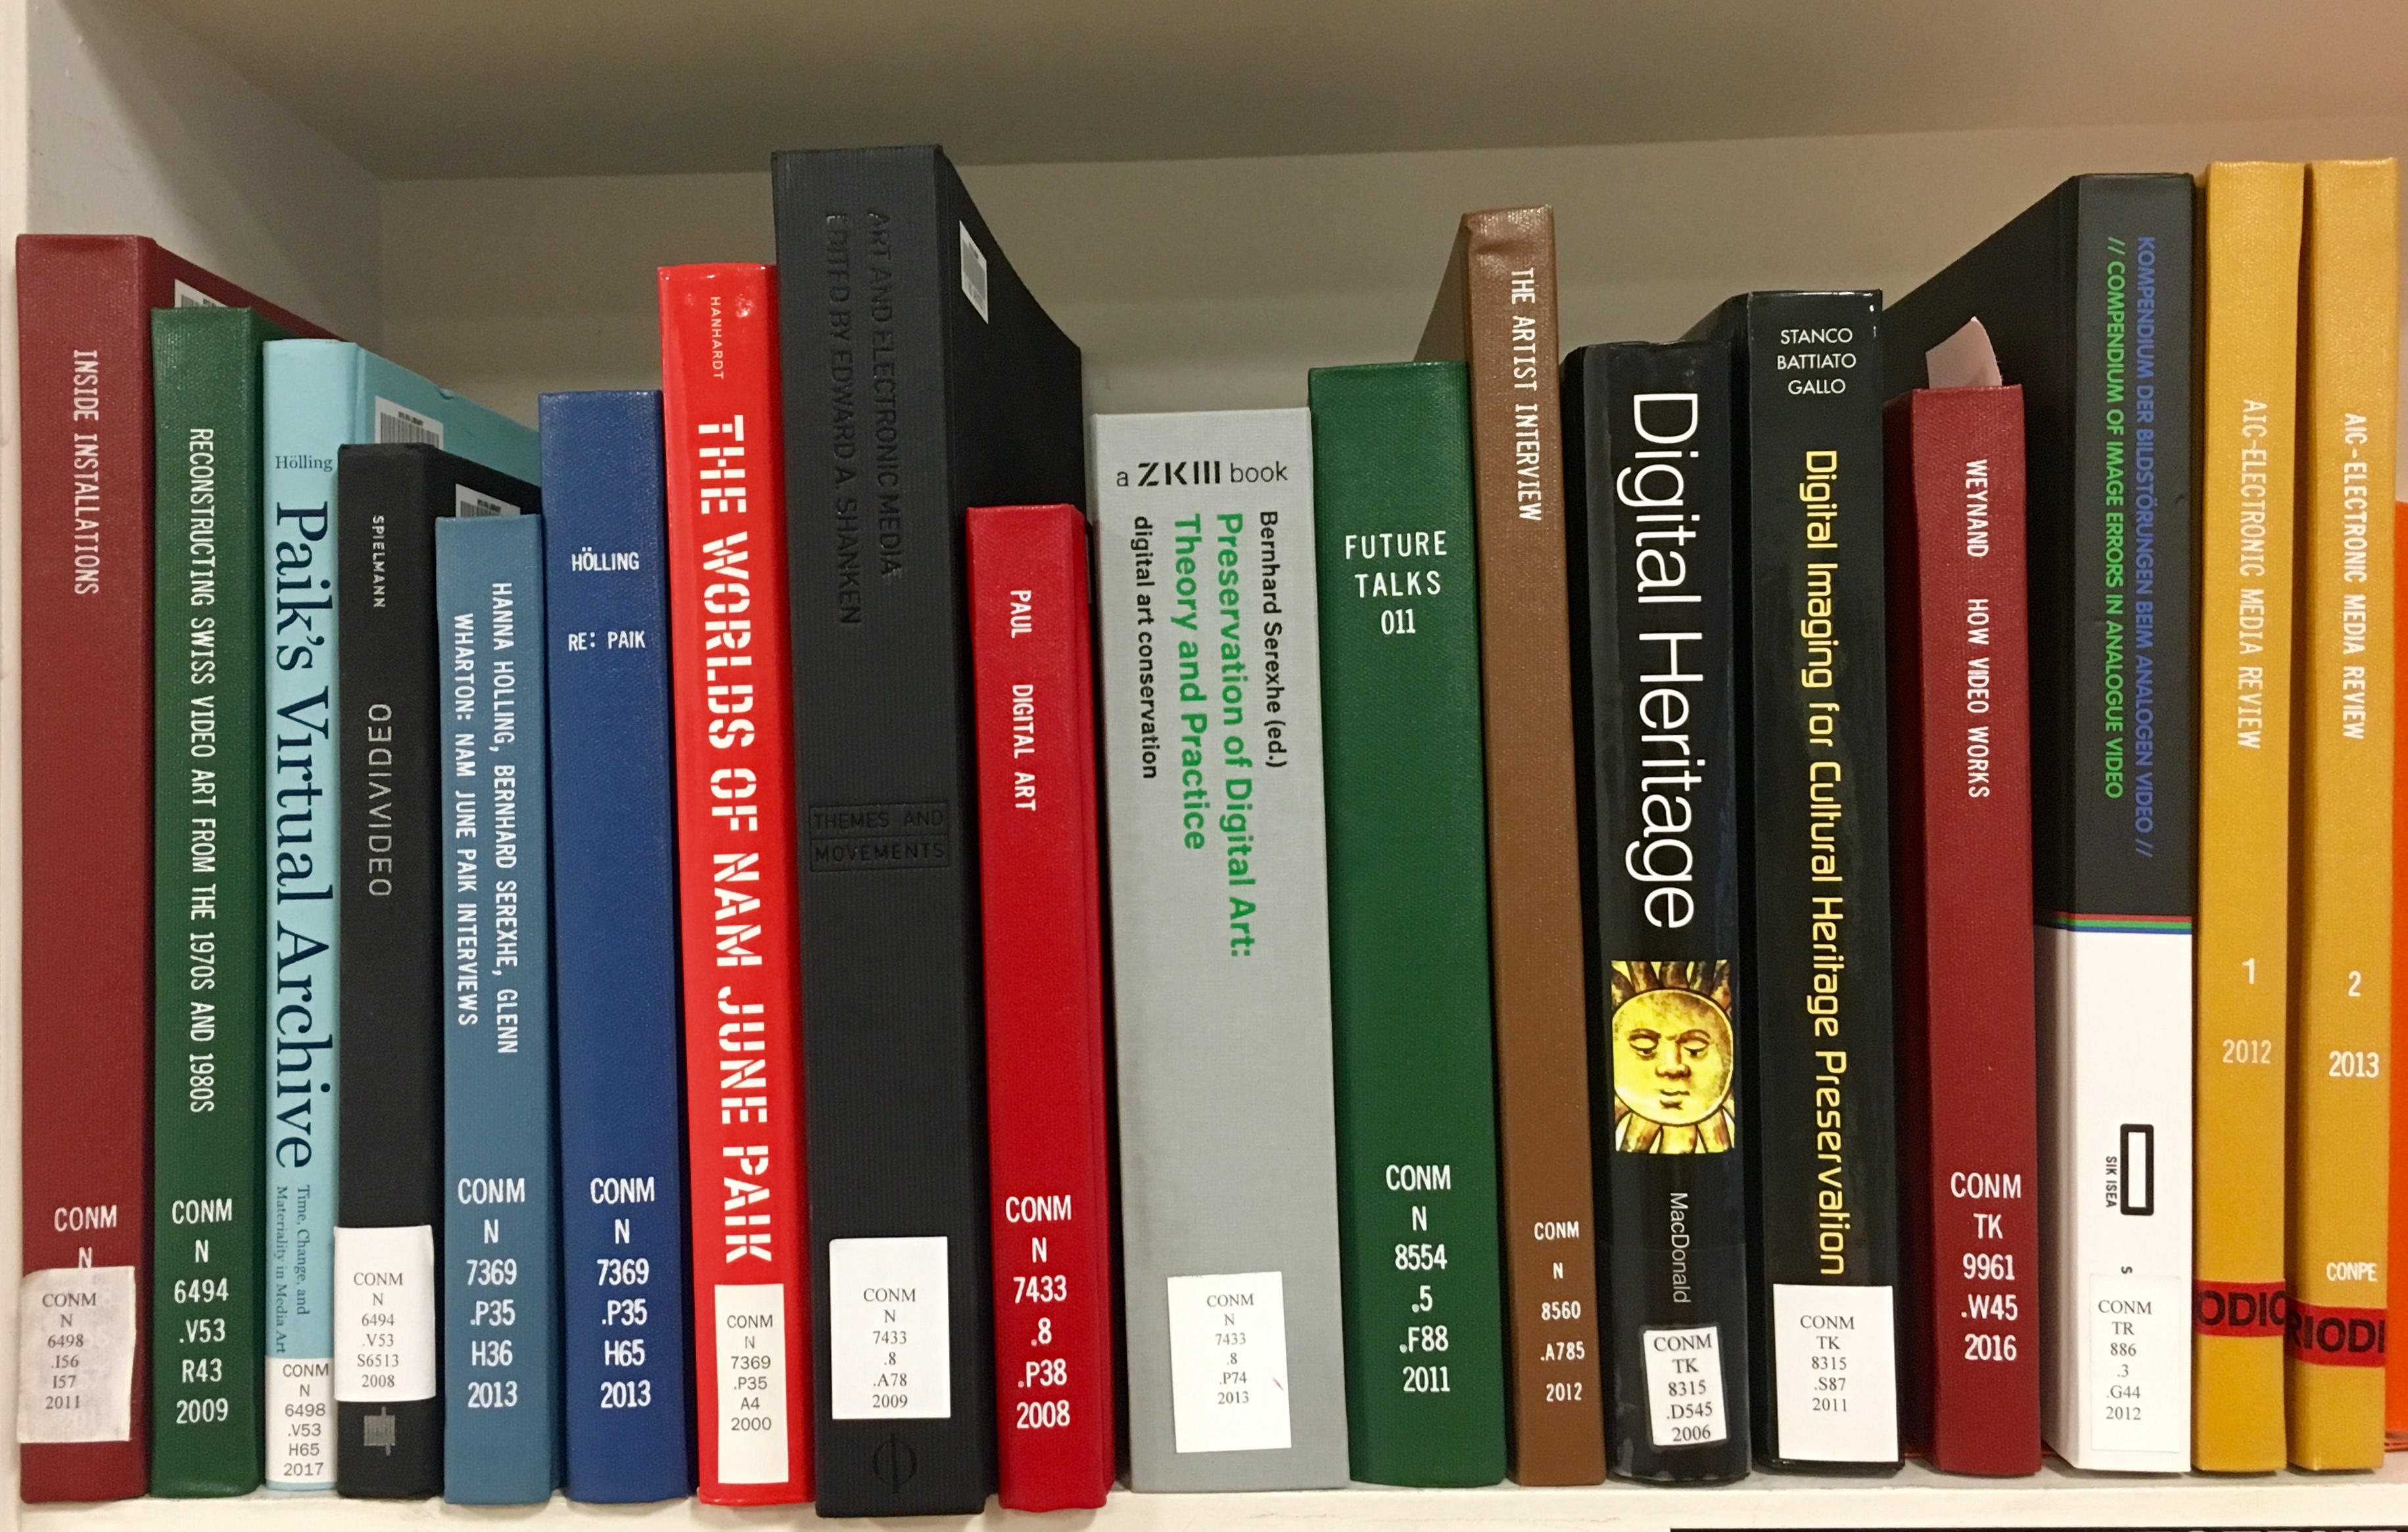 A bookshelf showing the spines of new books on time-based media.